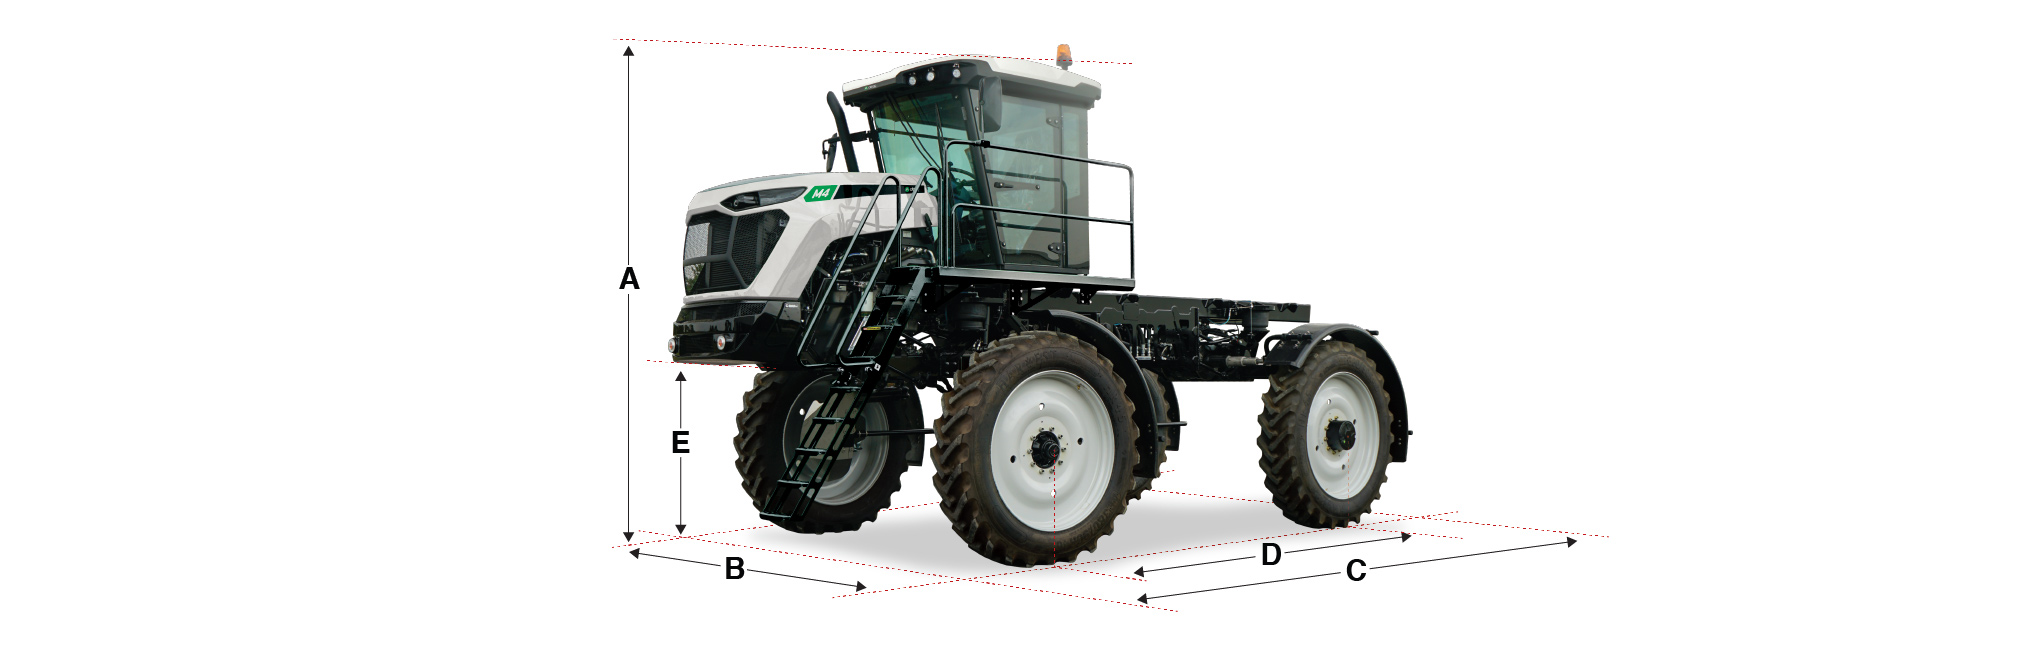 M4 Cab Chassis dimensions